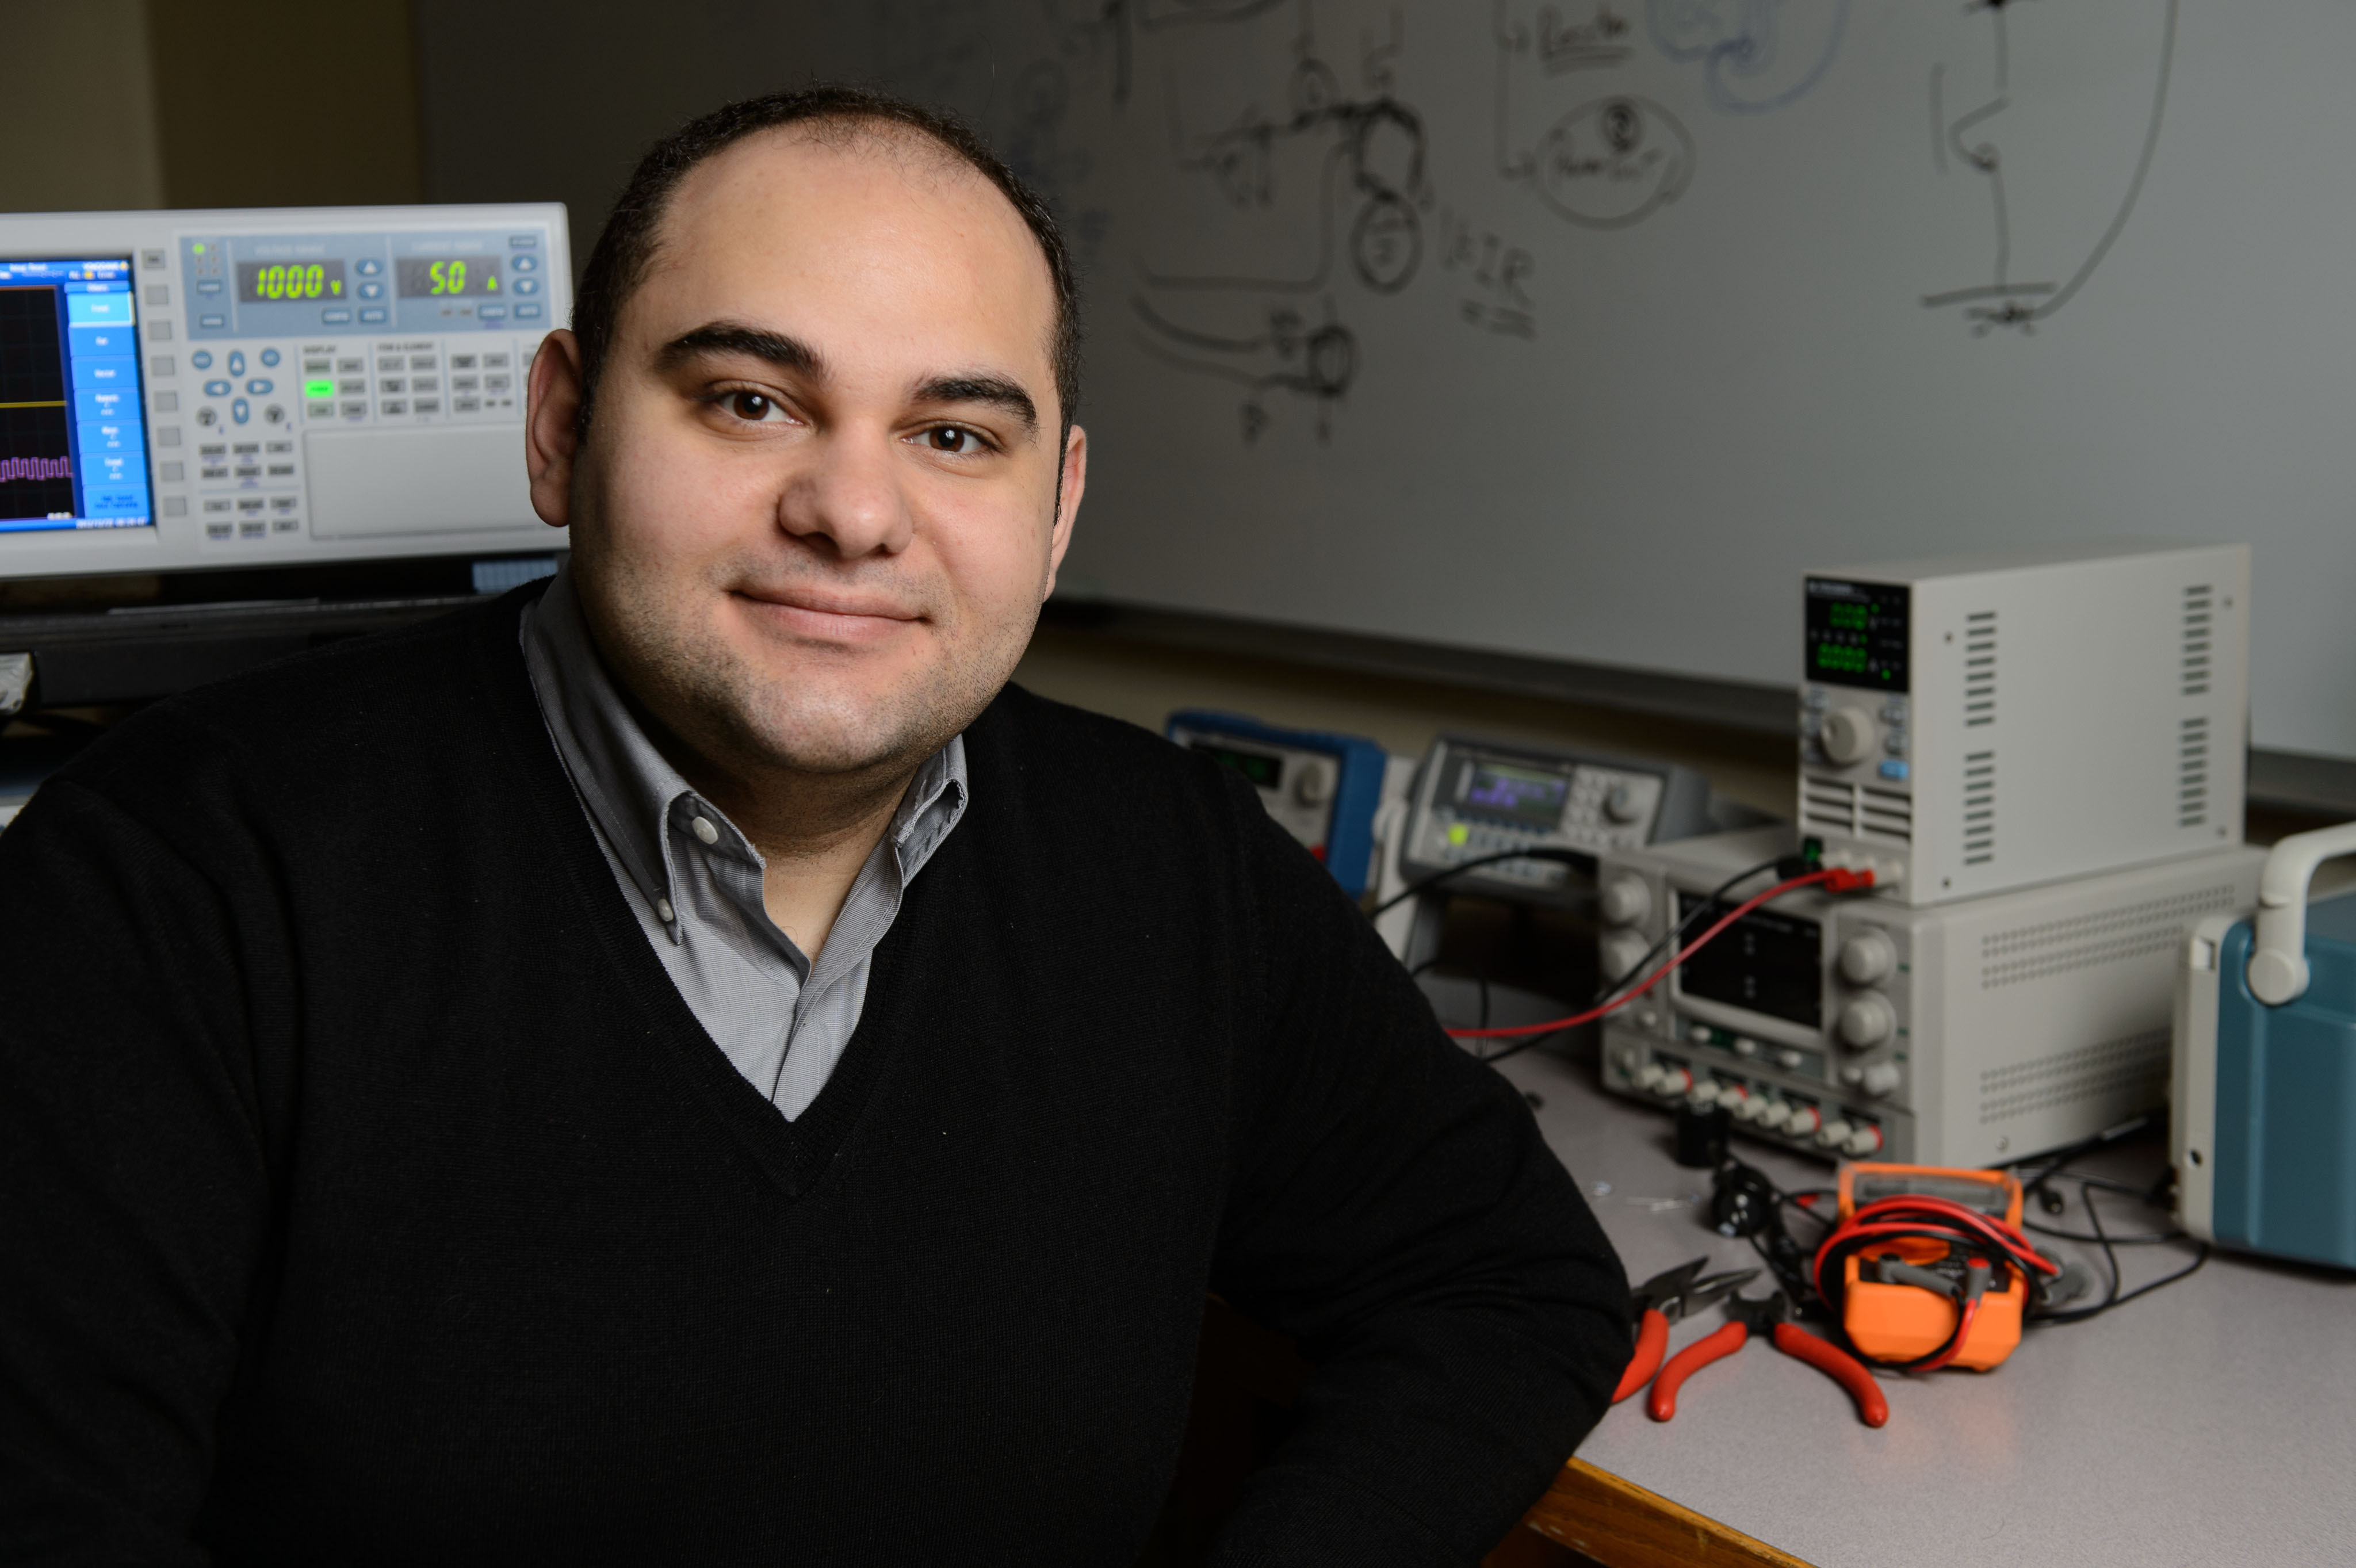 Ali Bazzi, assistant professor of electrical and computer engineering at his lab on Dec. 21, 2012. (Peter Morenus/UConn Photo)